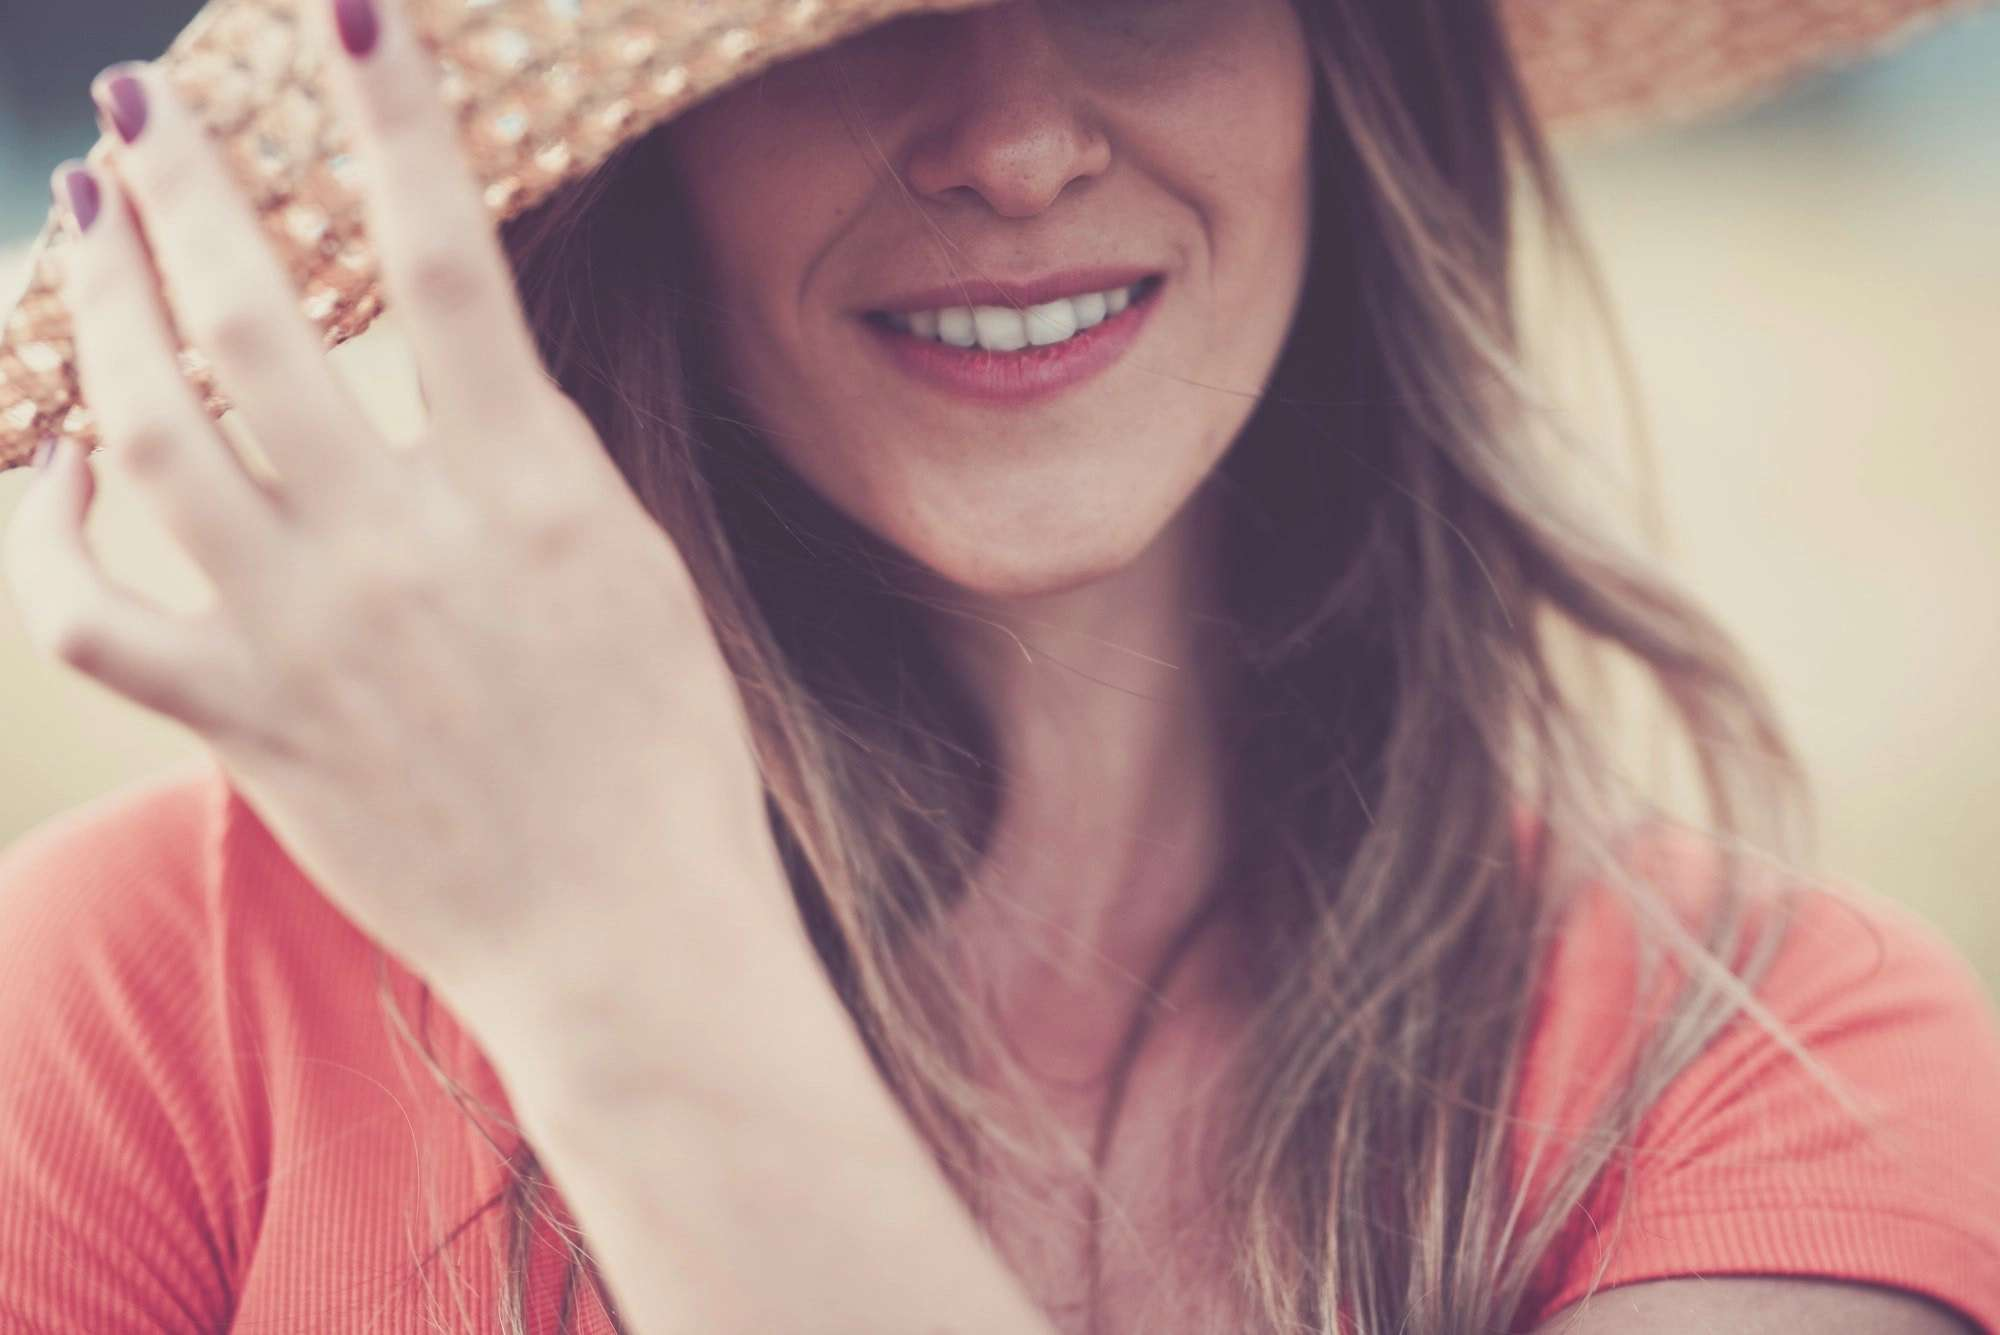 Close up woman portrait in vintage pink tones with cheerful female